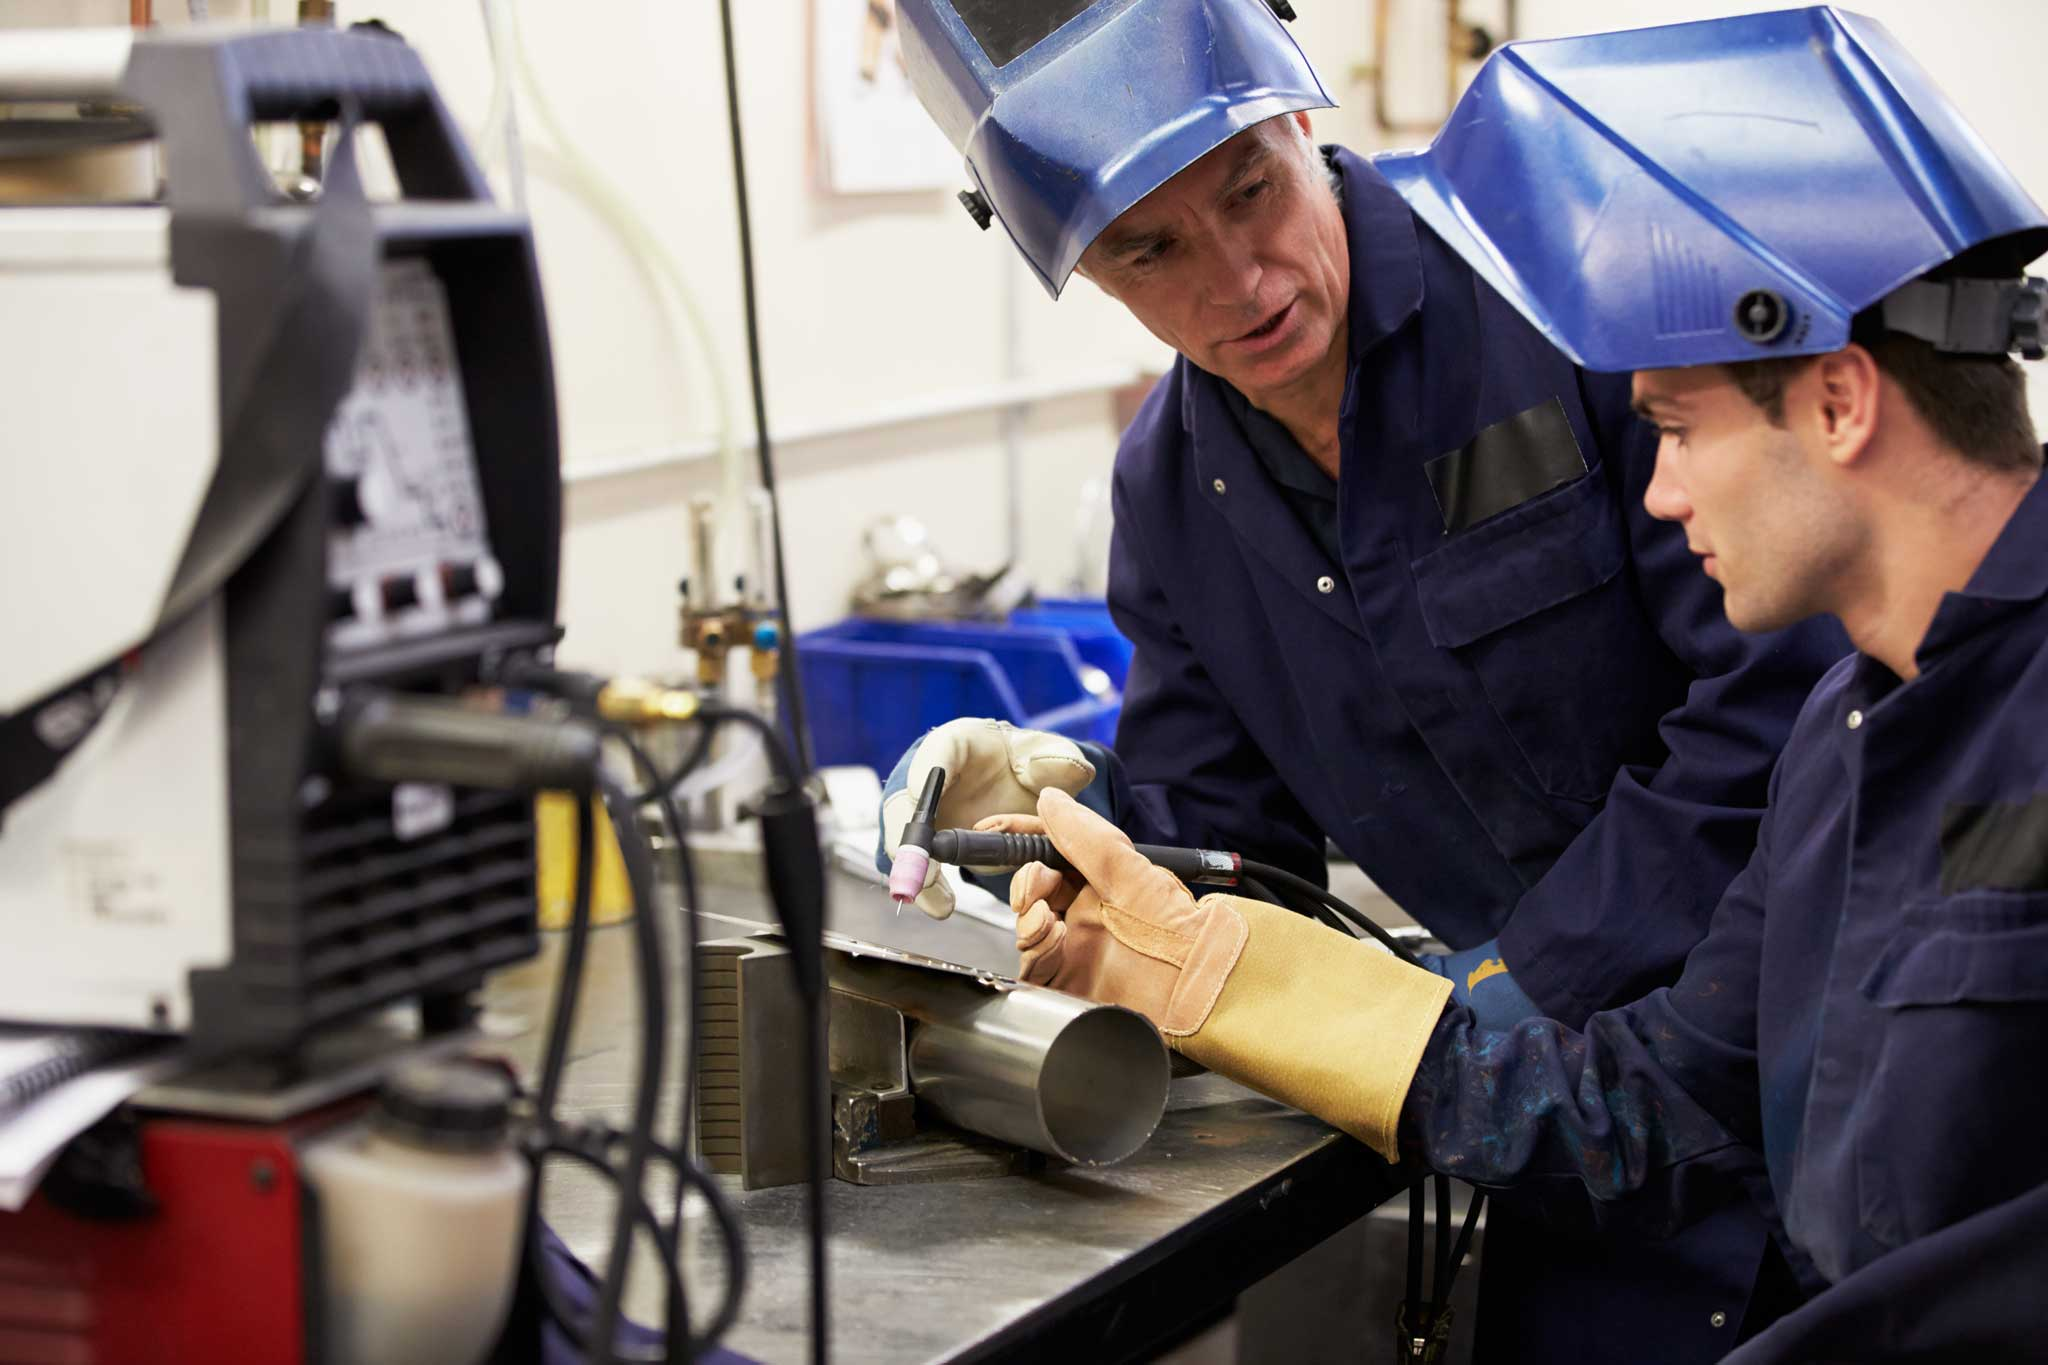 Apprentice Training for Sheet Metal Workers